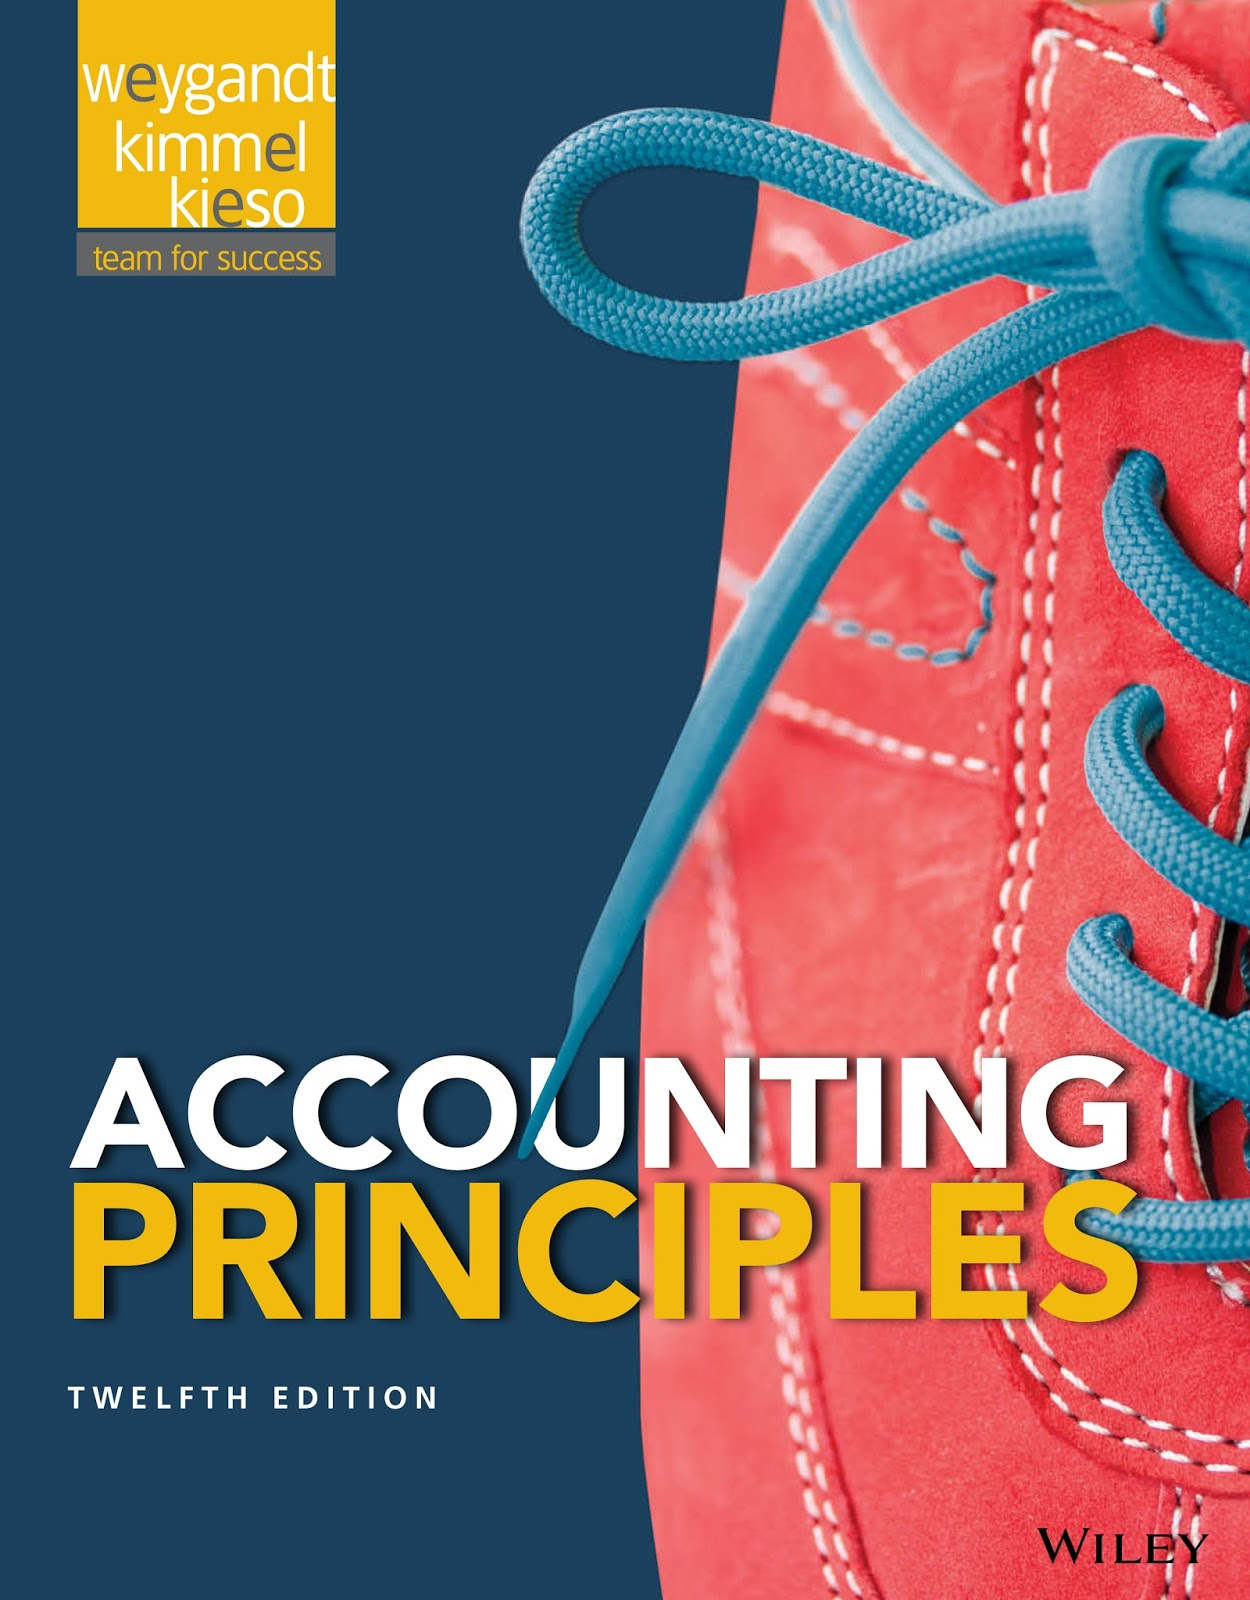 principles of accounting 11th edition pdf free download